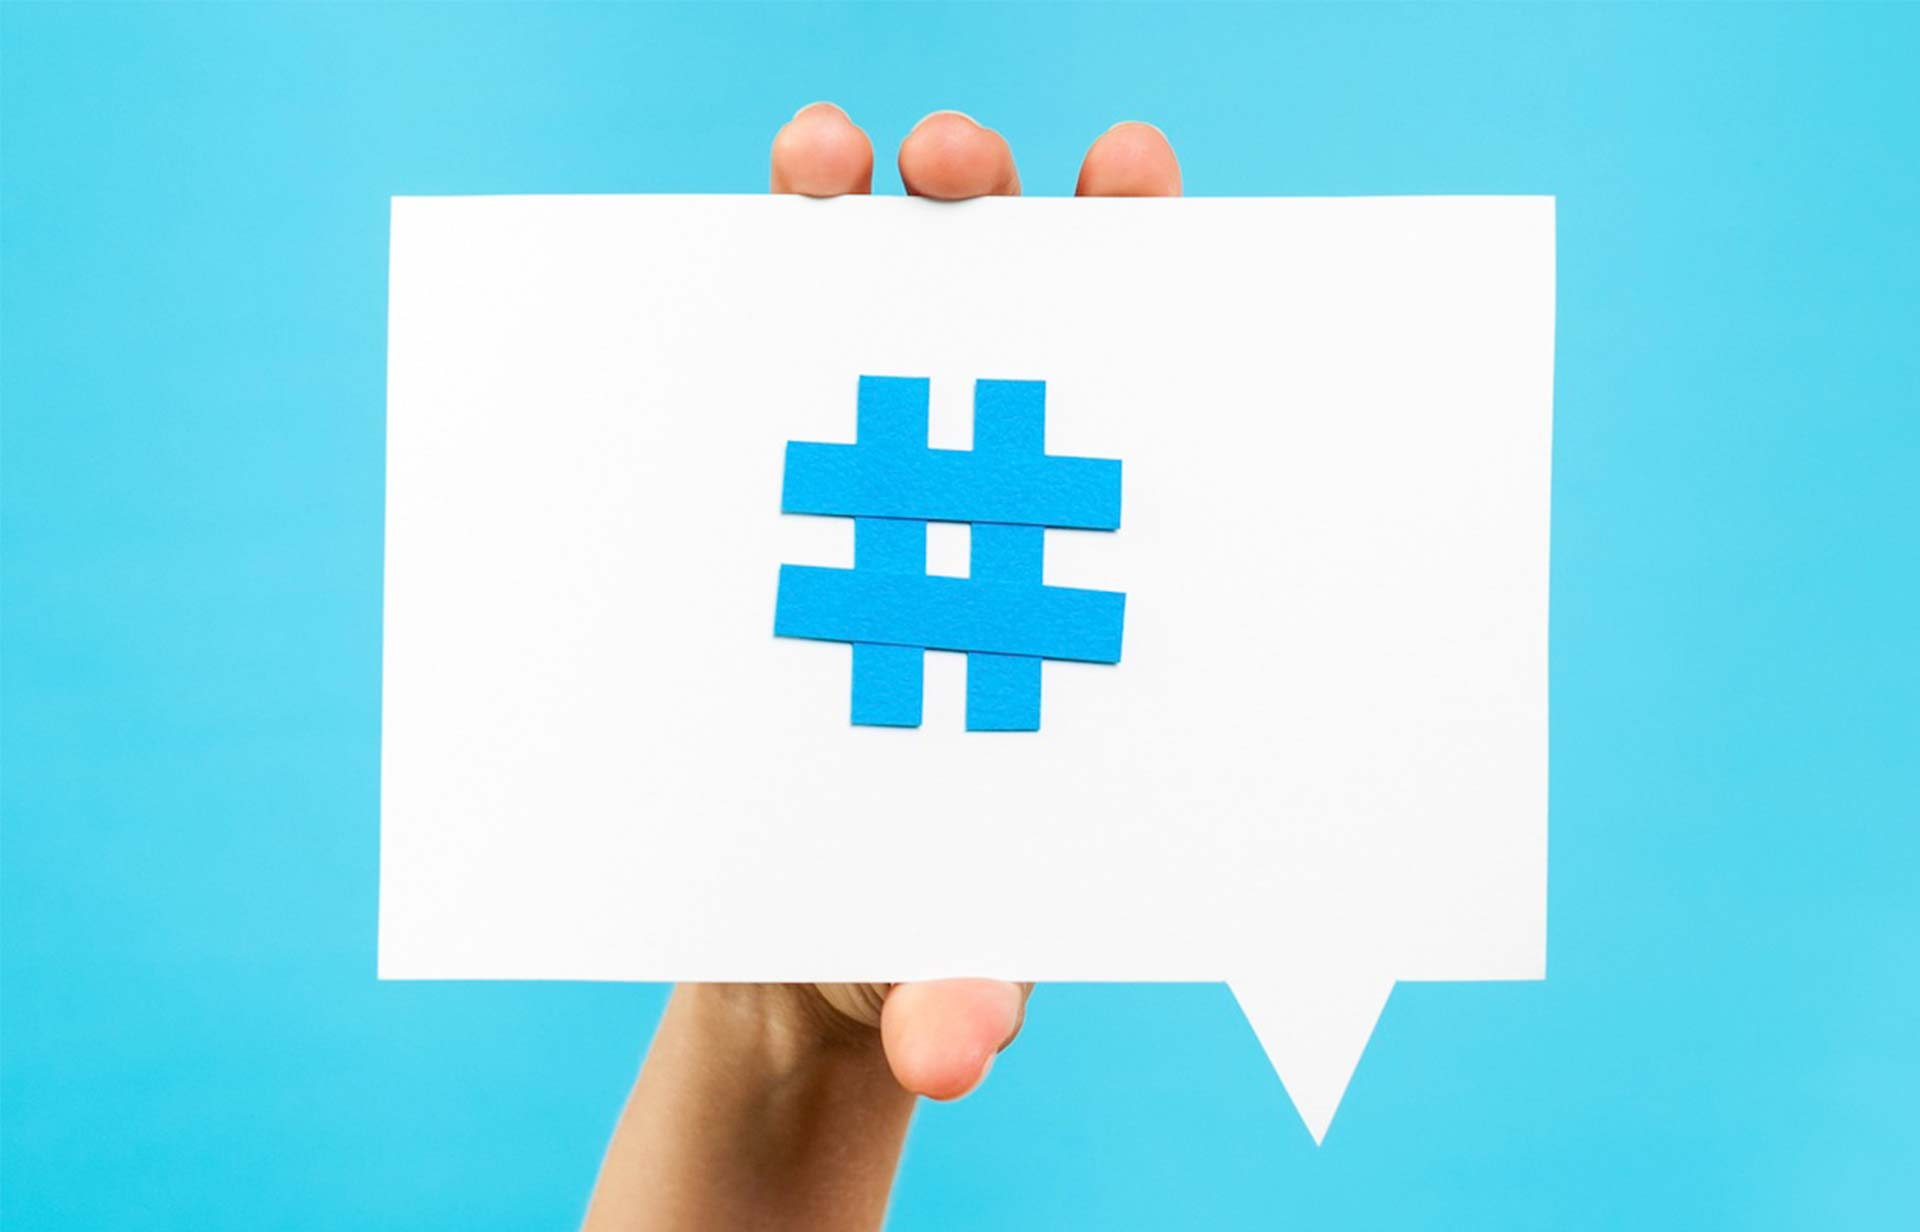 Image - How to use #Hashtags on Different Social Media Sites